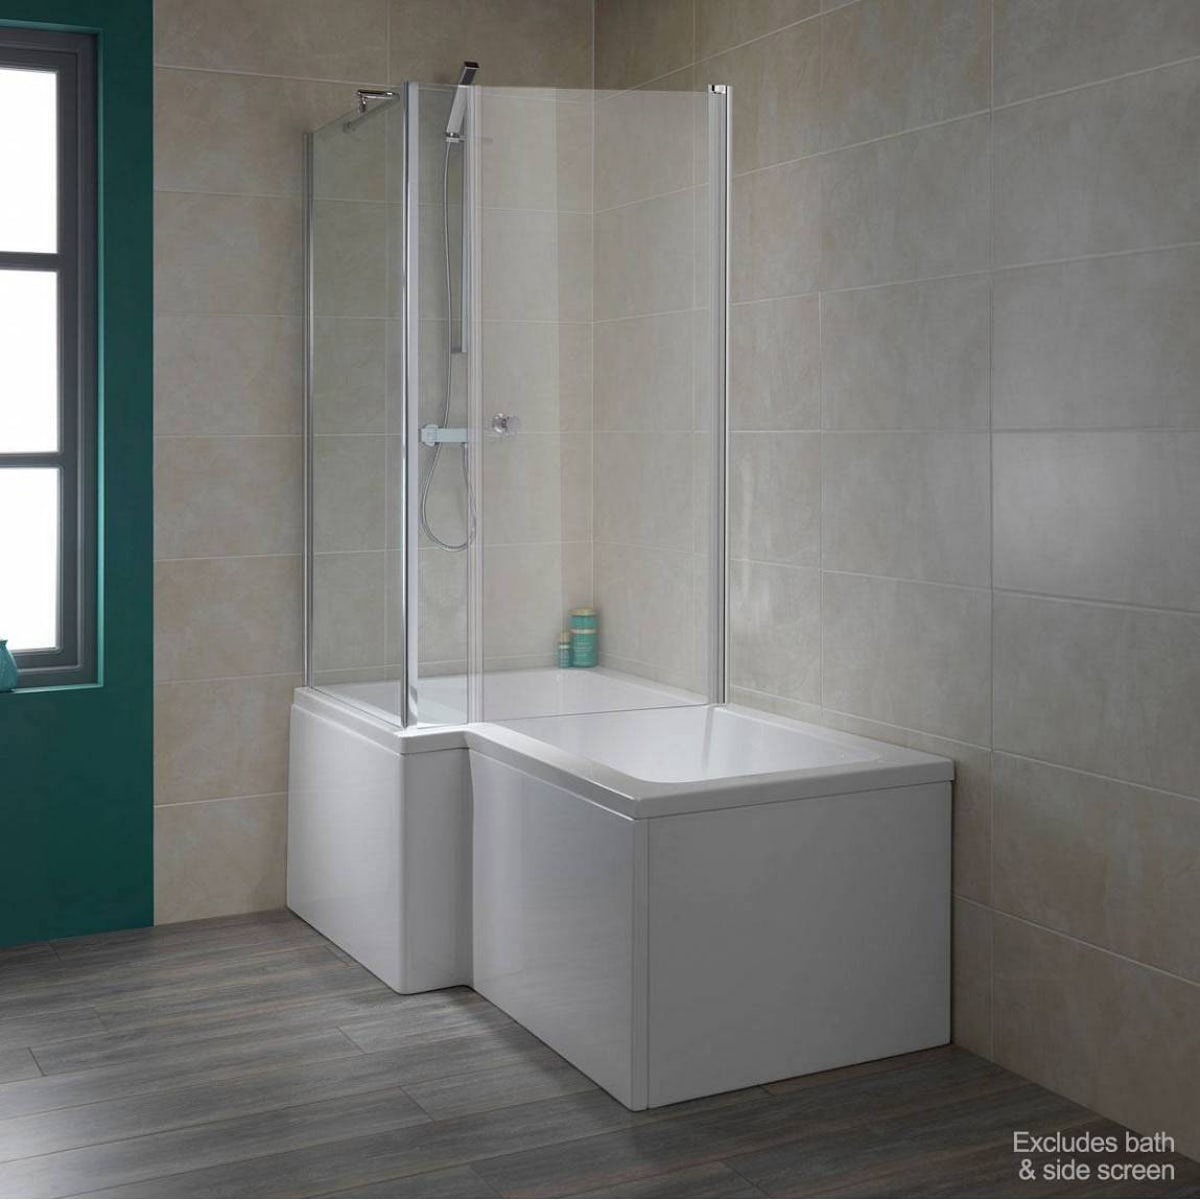 6mm glass door for square shaped shower bath victoriaplum com 6mm glass door for square shaped shower bath